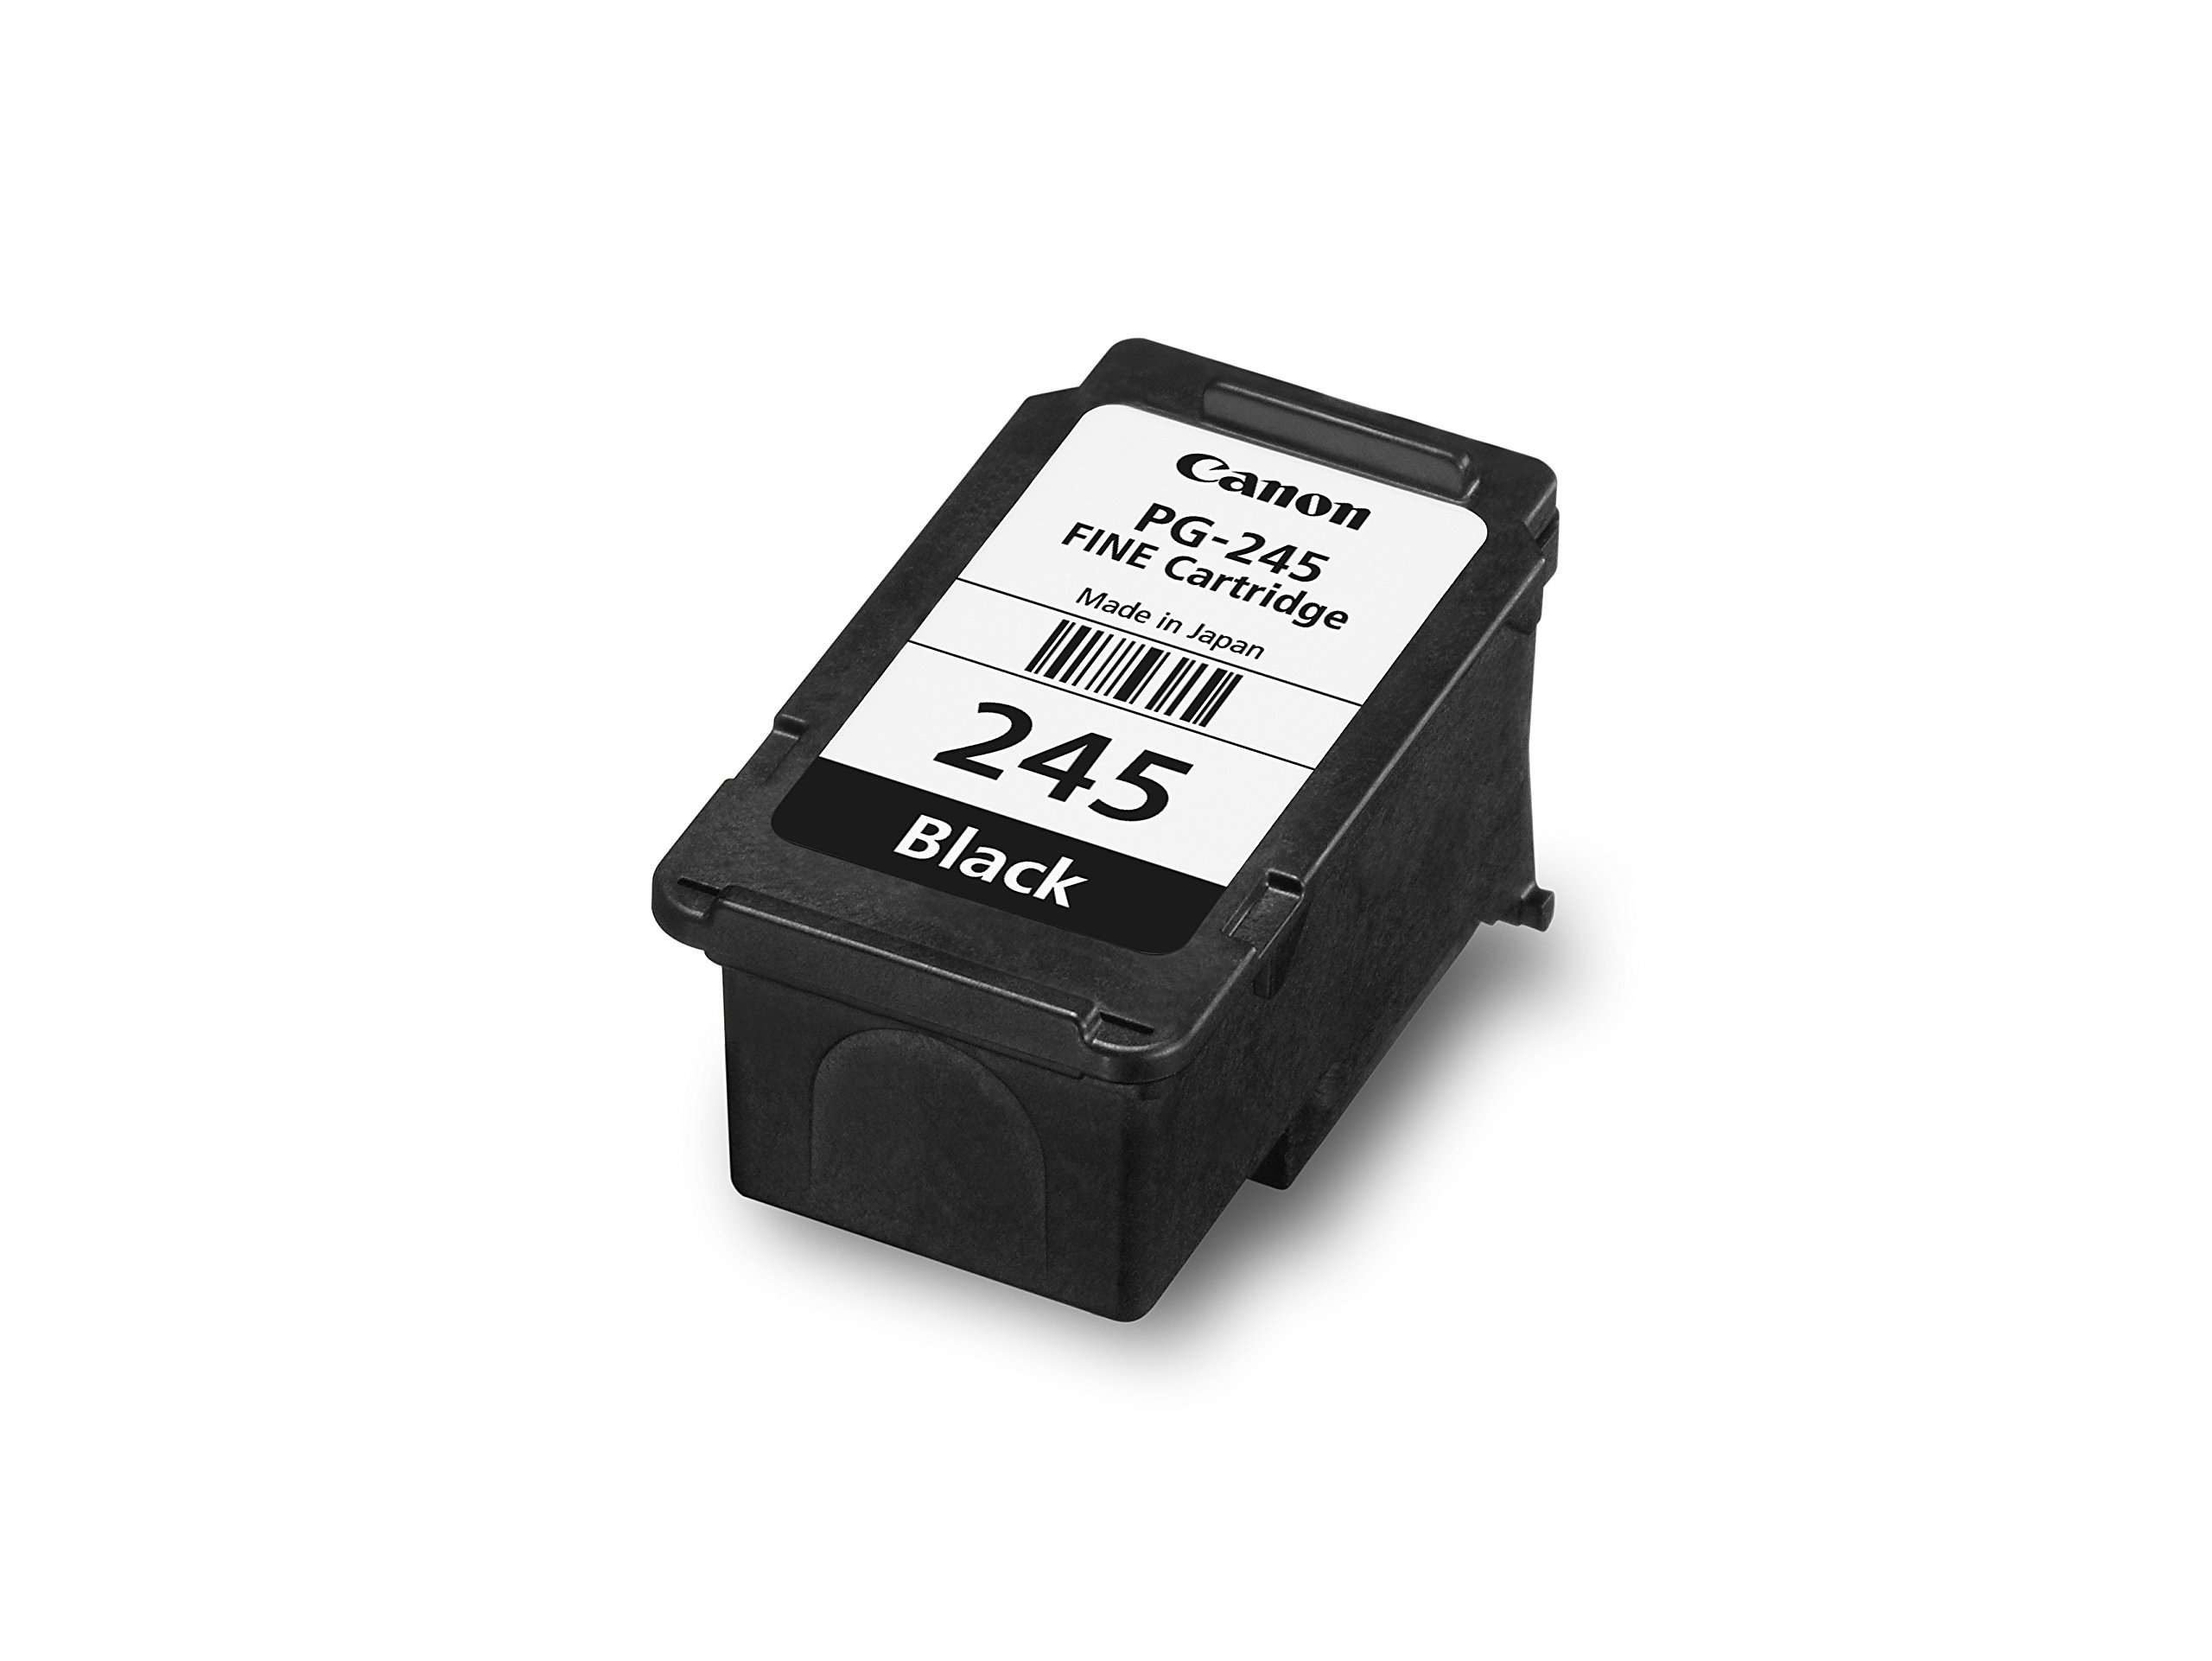 Canon PG-245 Black Cartridge, Compatible to MX492, MG3020, MG2920,MG2924, iP2820, MG2525 and MG2420 by Canon (Image #3)